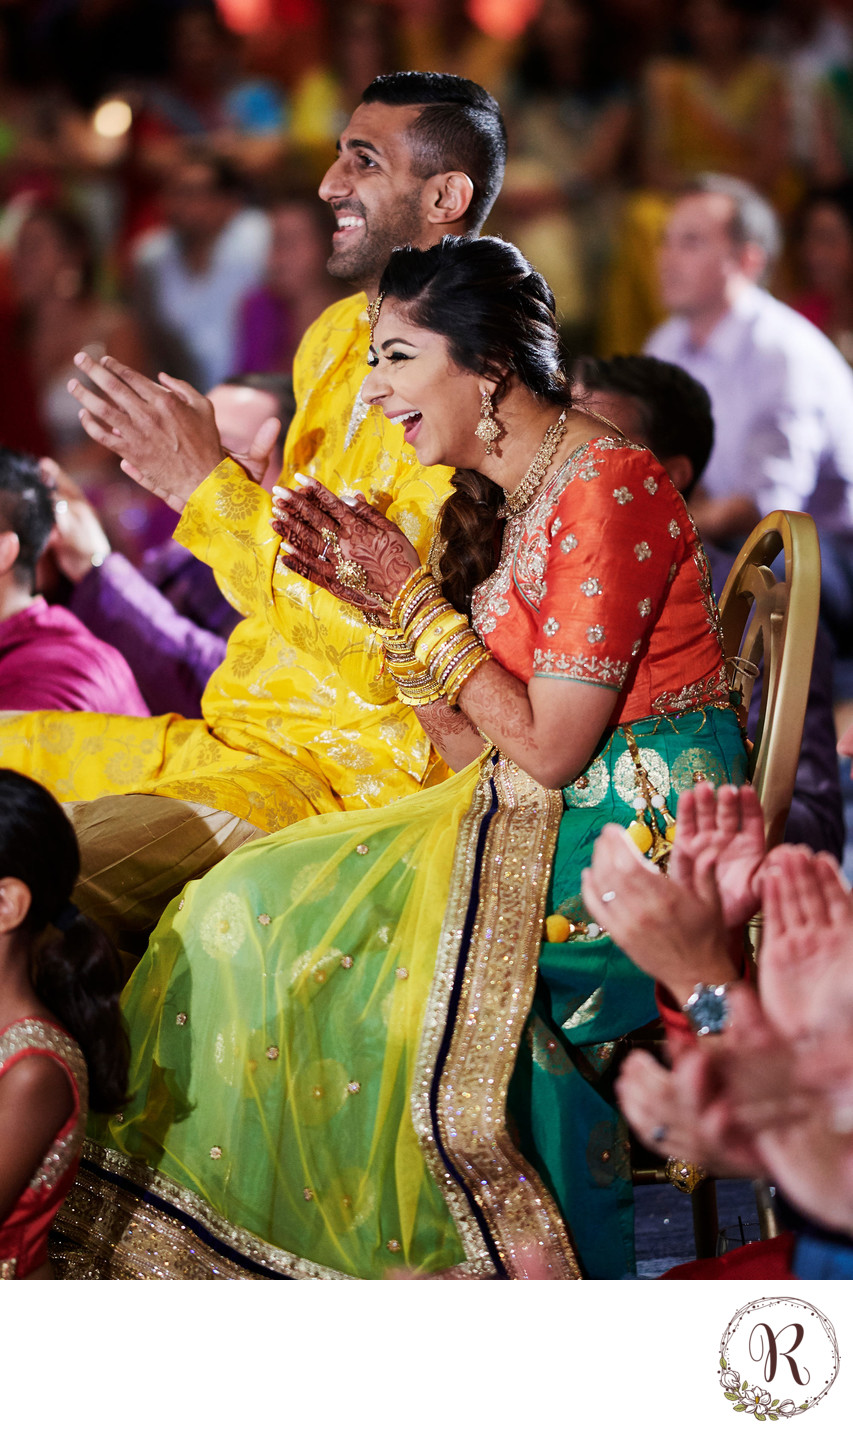 Indian Wedding Reception Photographer, Baltimore, MD